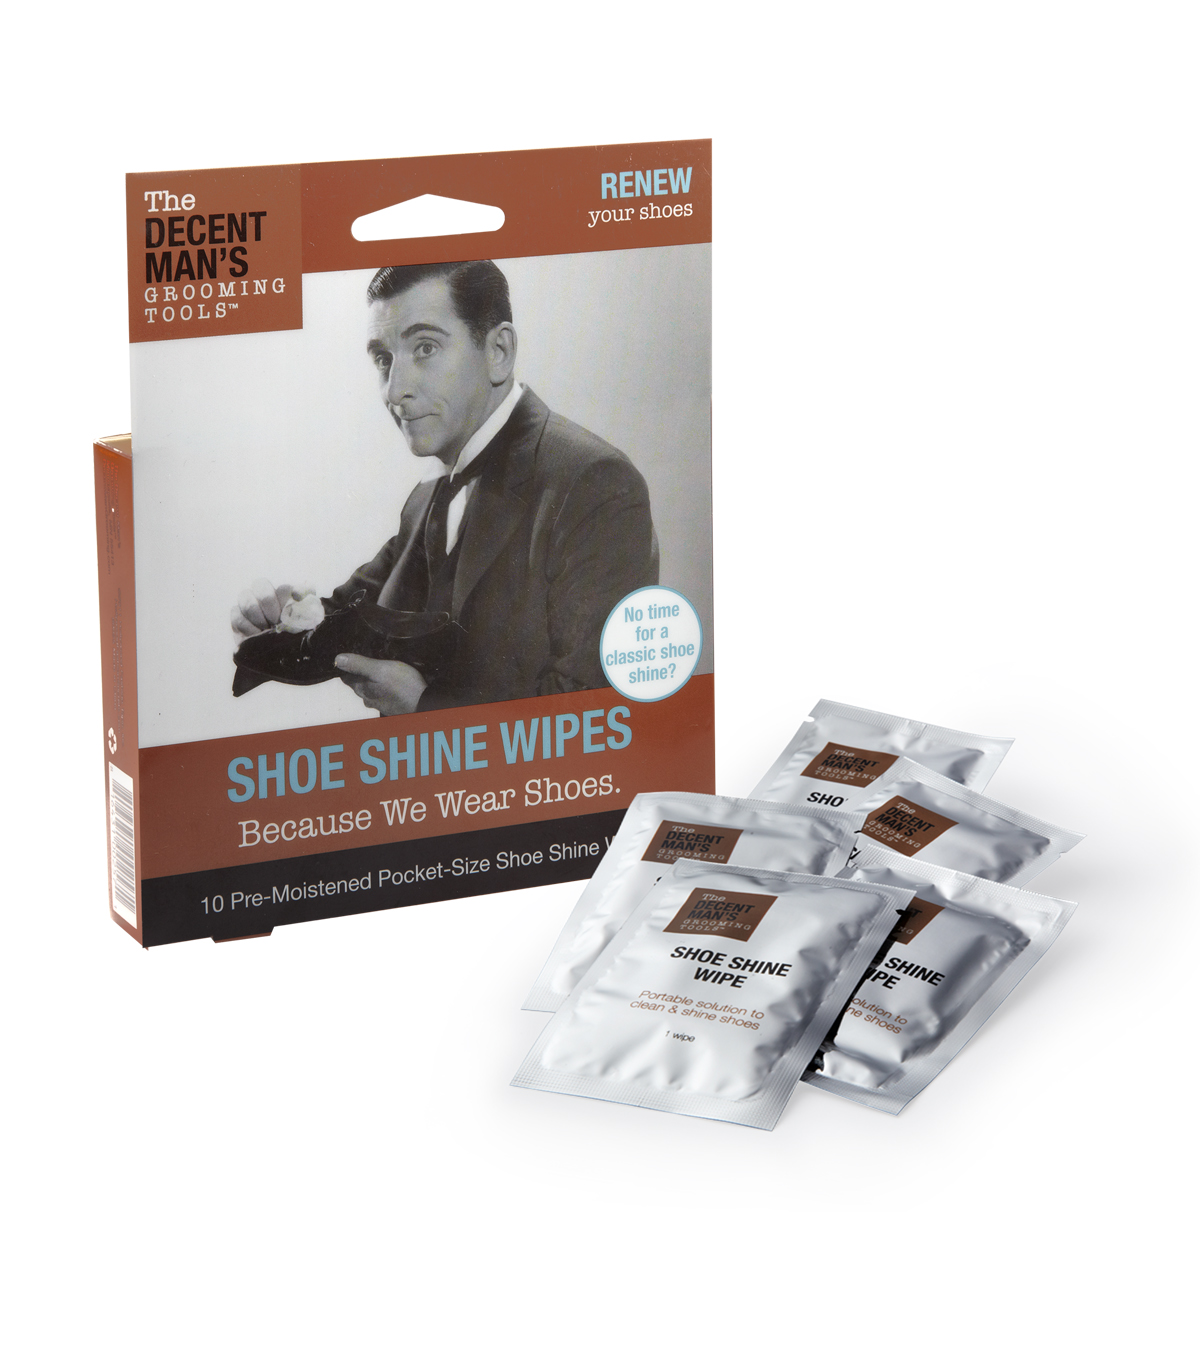 The Decent Man's Grooming Tools-Shoe Shine Wipes